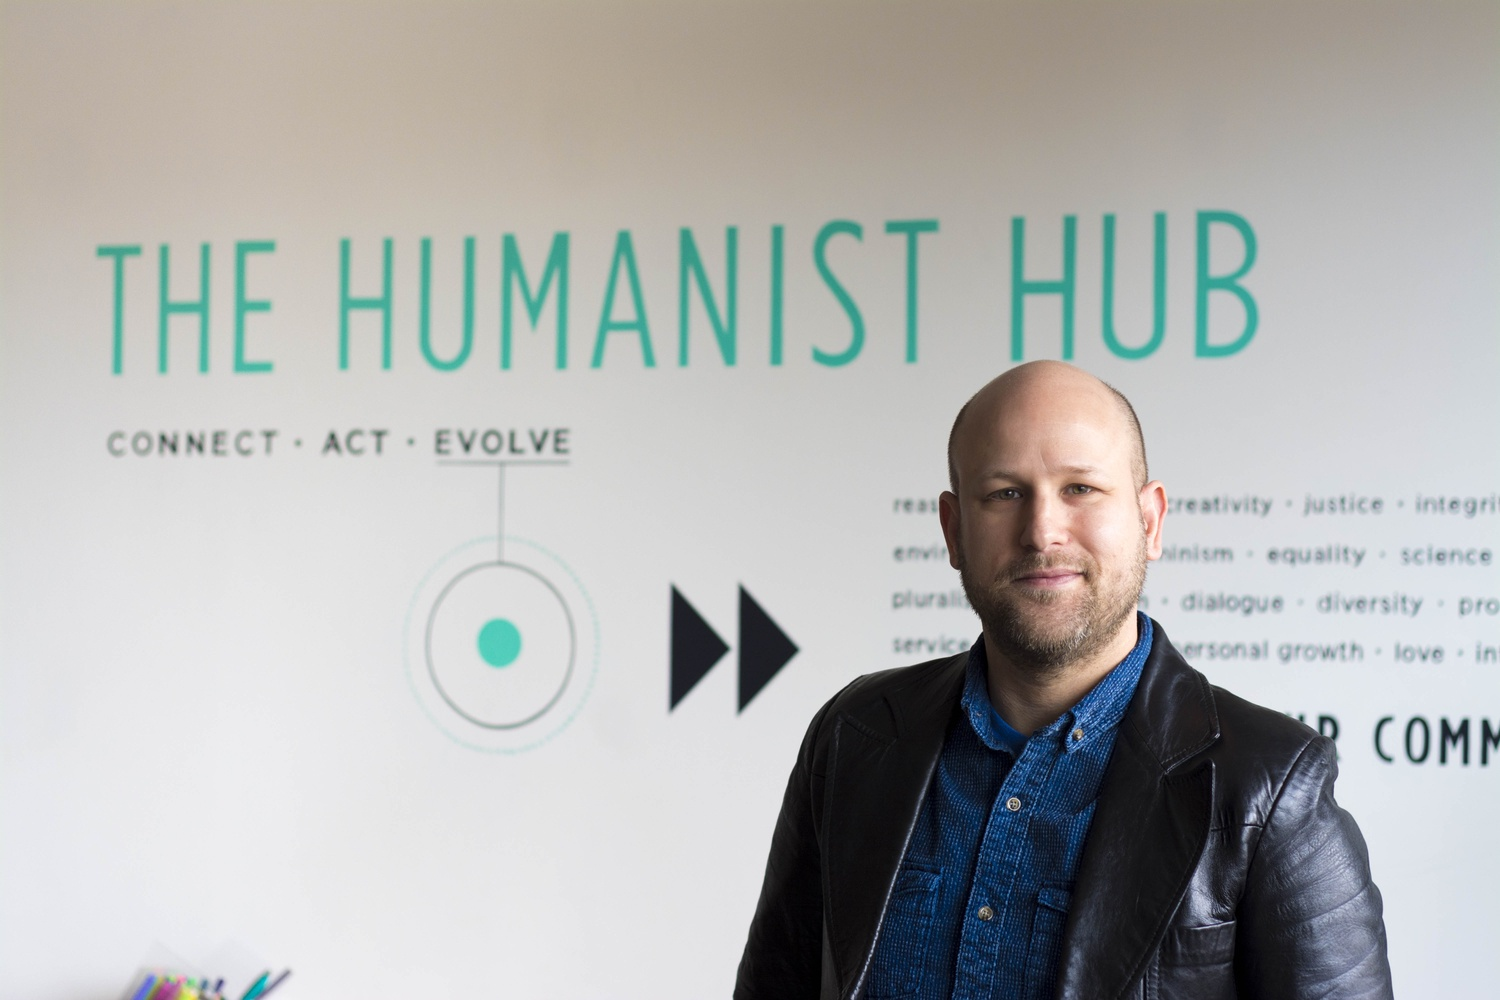 Greg M. Epstein is the humanist chaplain at Harvard and runs the Humanist Hub, which serves atheists, agnostics, and humanists in the student body and the greater Boston area.